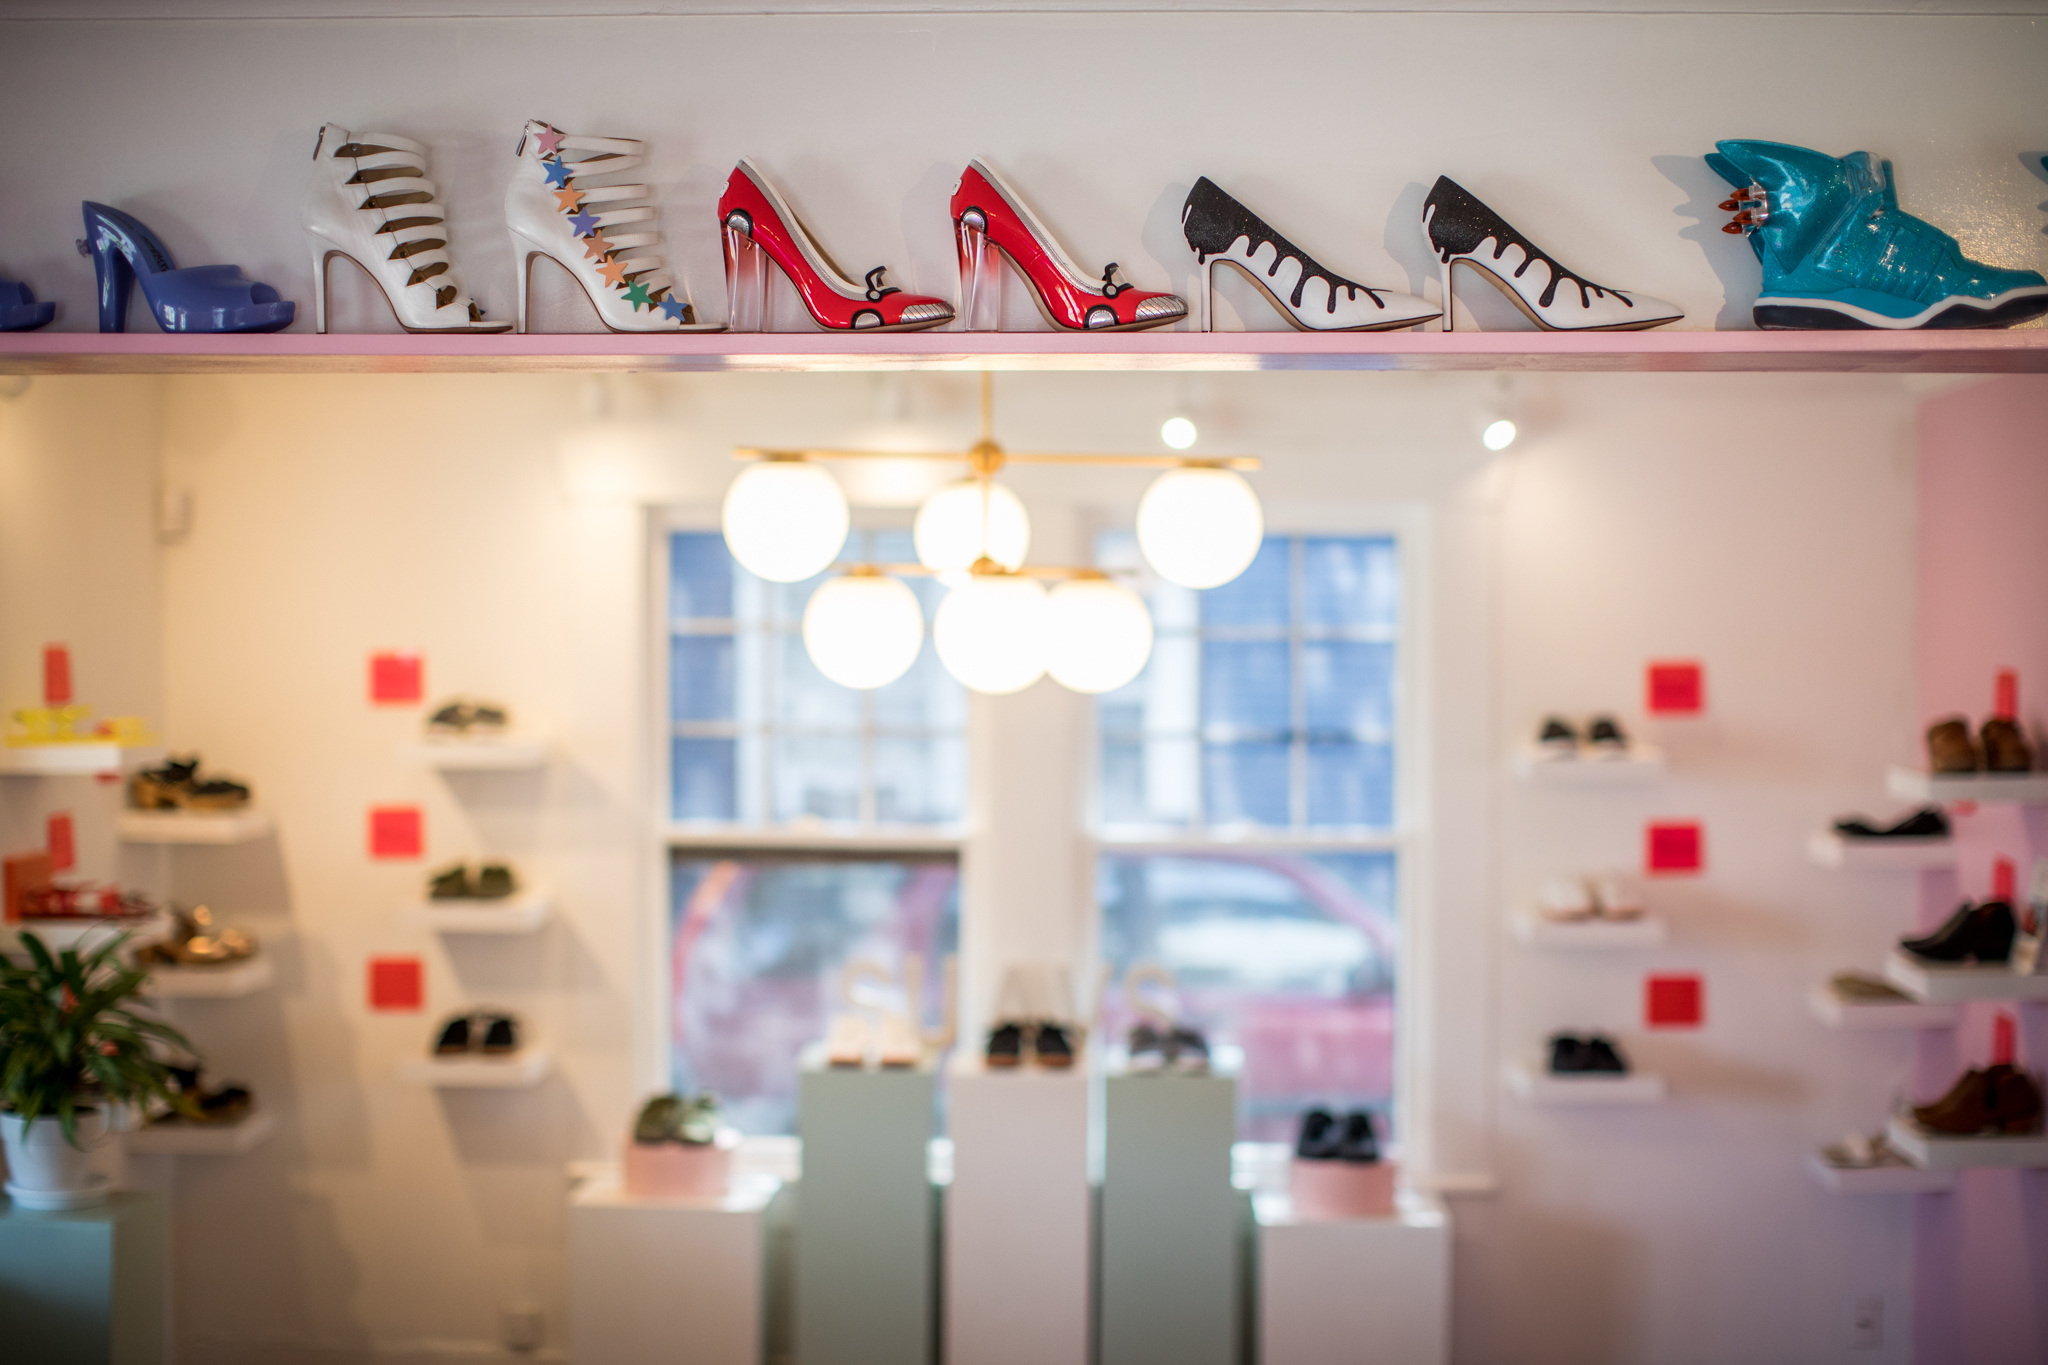 Art of Shoes Interior